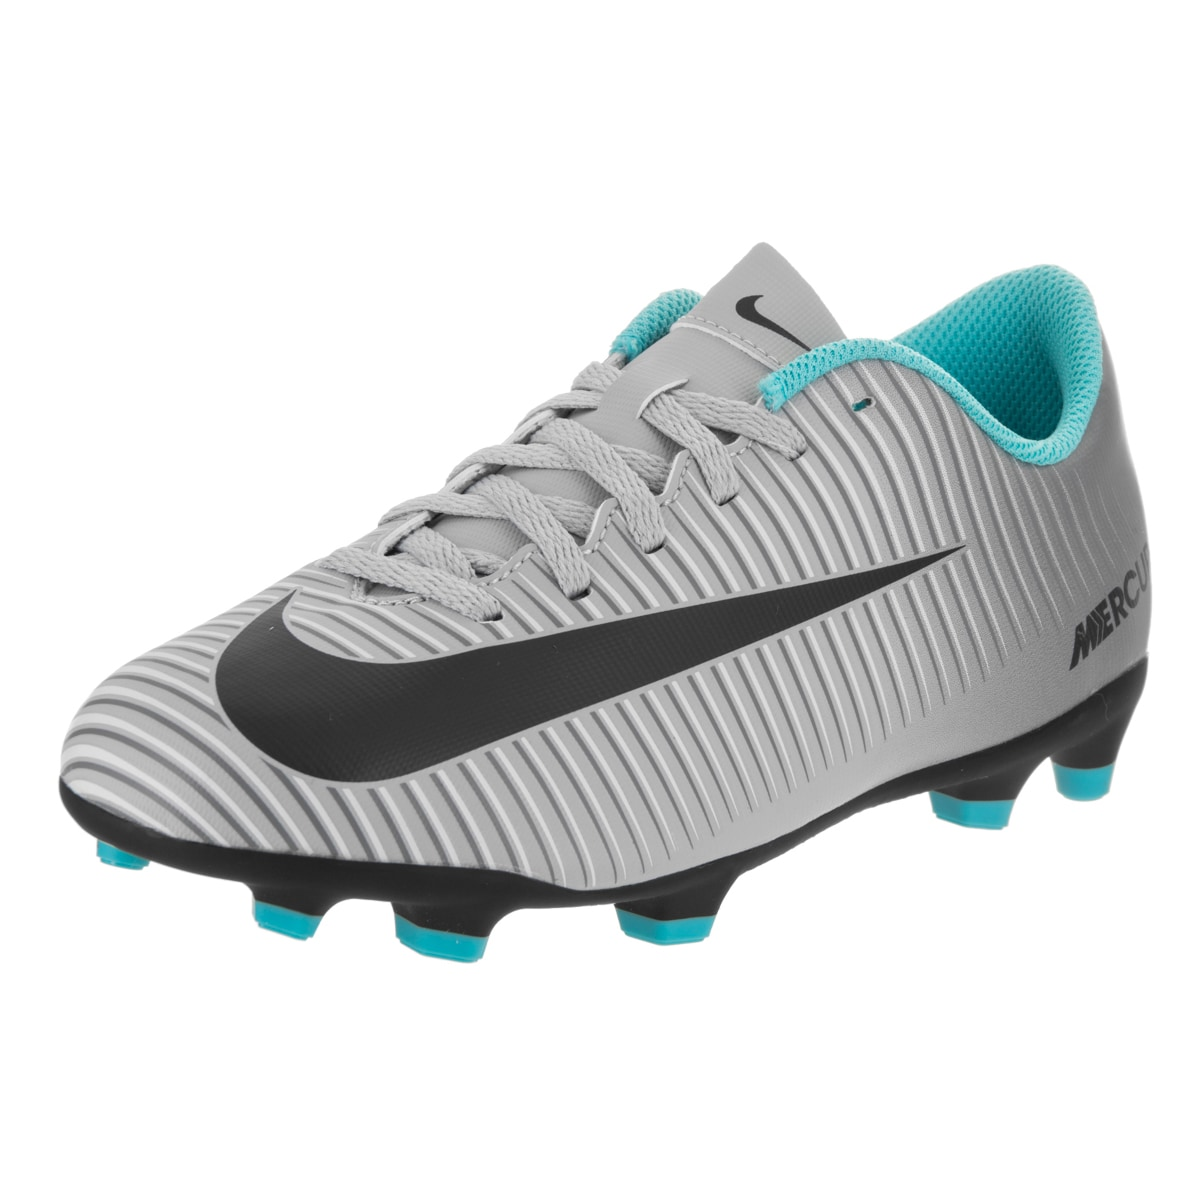 Shop Nike Kids JR Mercurial Vortex III Fg Soccer Cleats - Free Shipping  Today - Overstock - 14968741 91660ac873ee